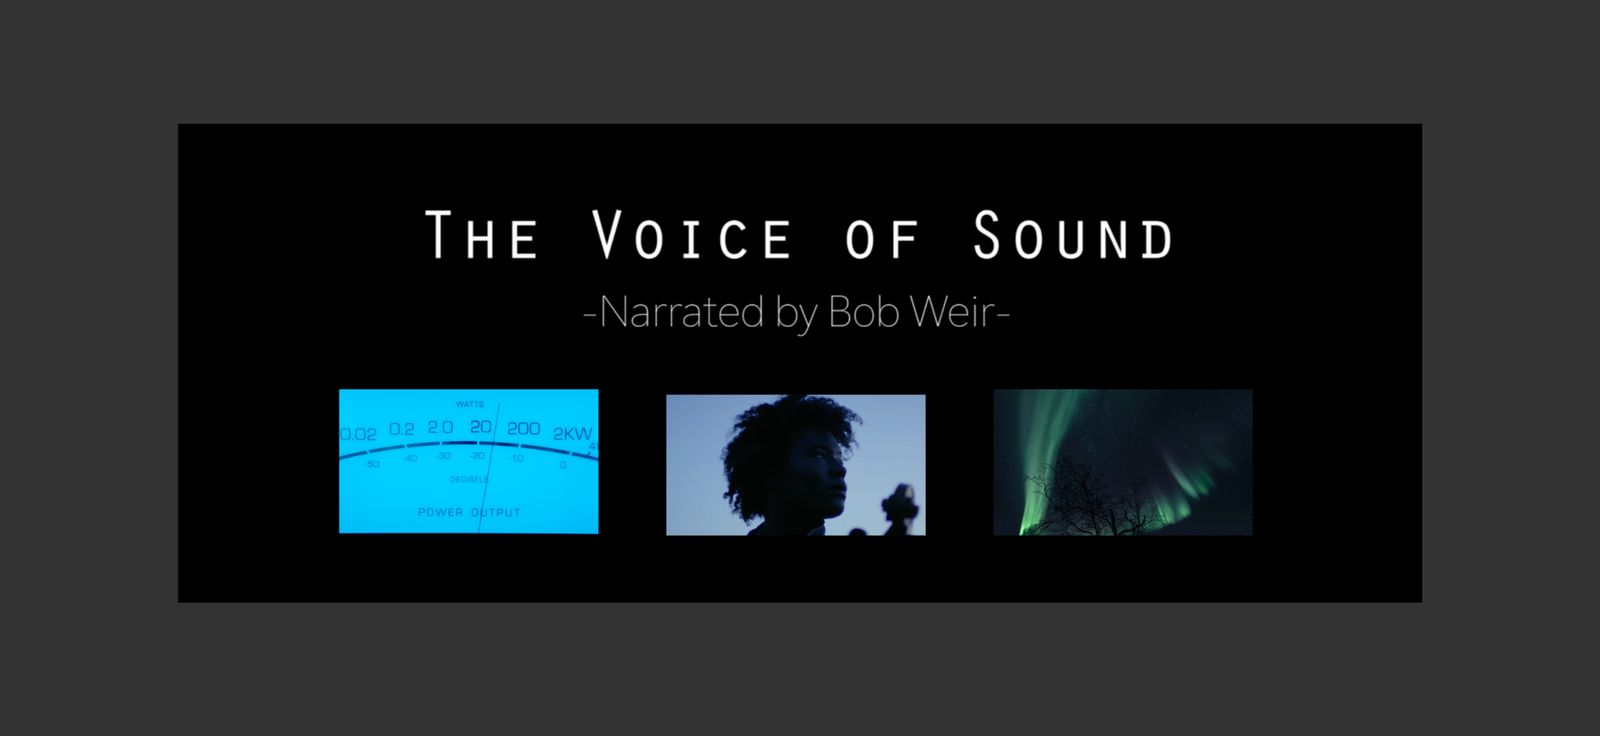 McIntosh, The Voice of Sound - Narrated by Bob Weir